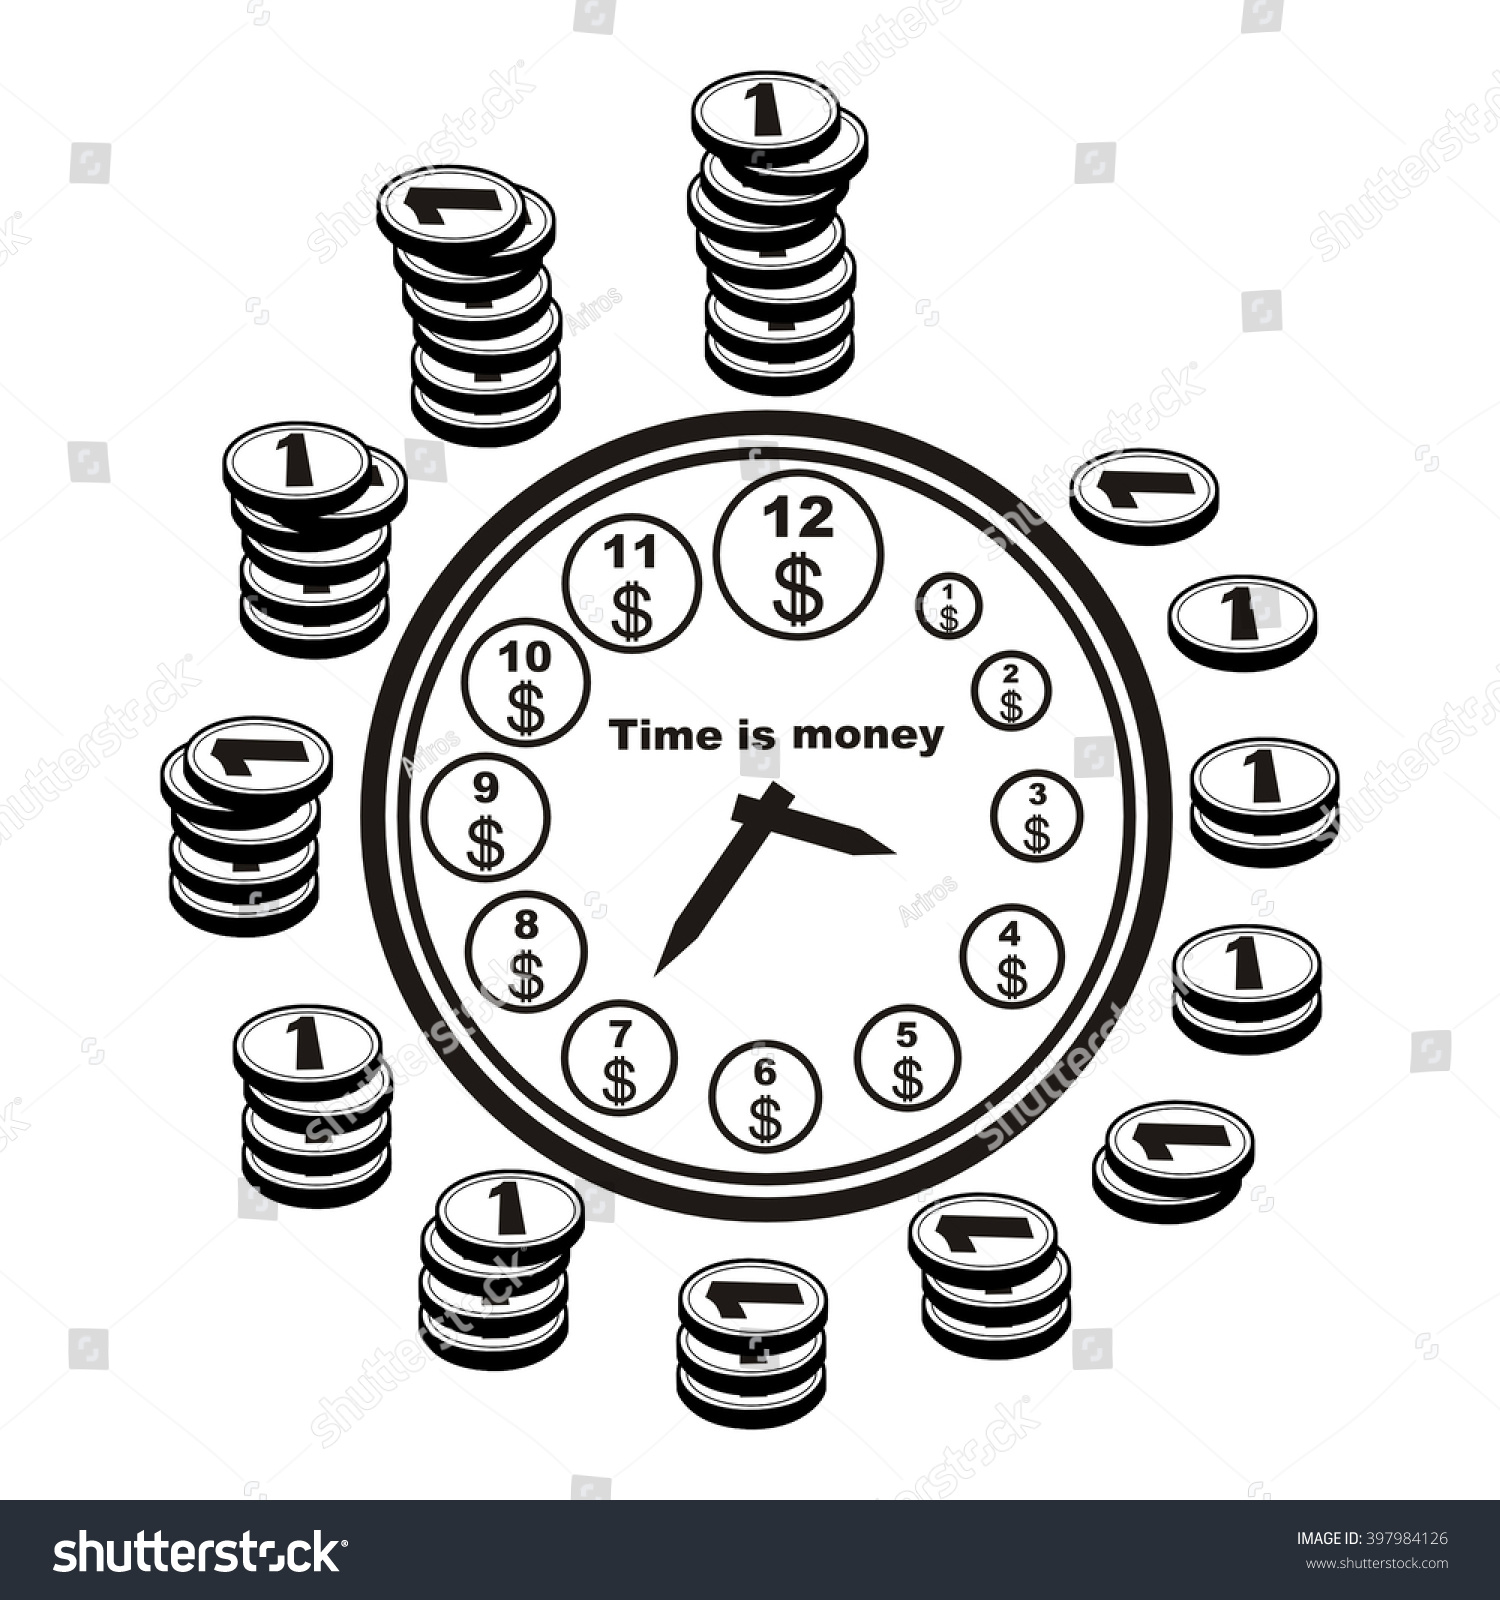 Banking symbol bank symbol pension fund stock vector 397984126 banking symbol bank symbol pension fund symbol mutual fund symbol computer drawing biocorpaavc Images